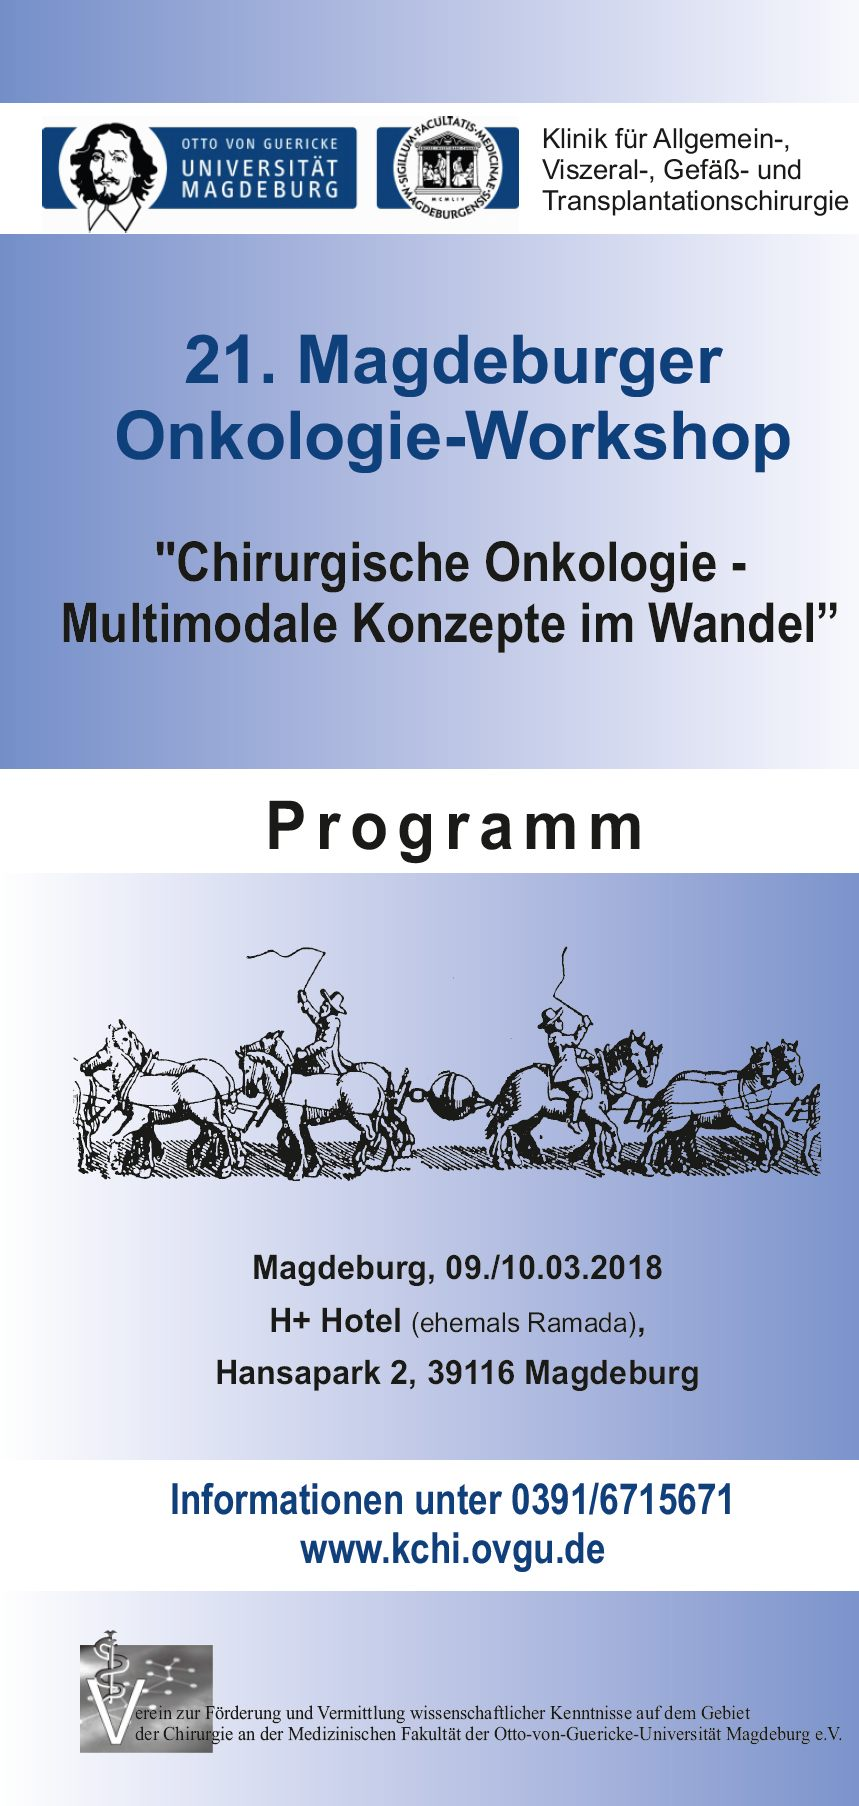 Onkologie-Workshop 2018